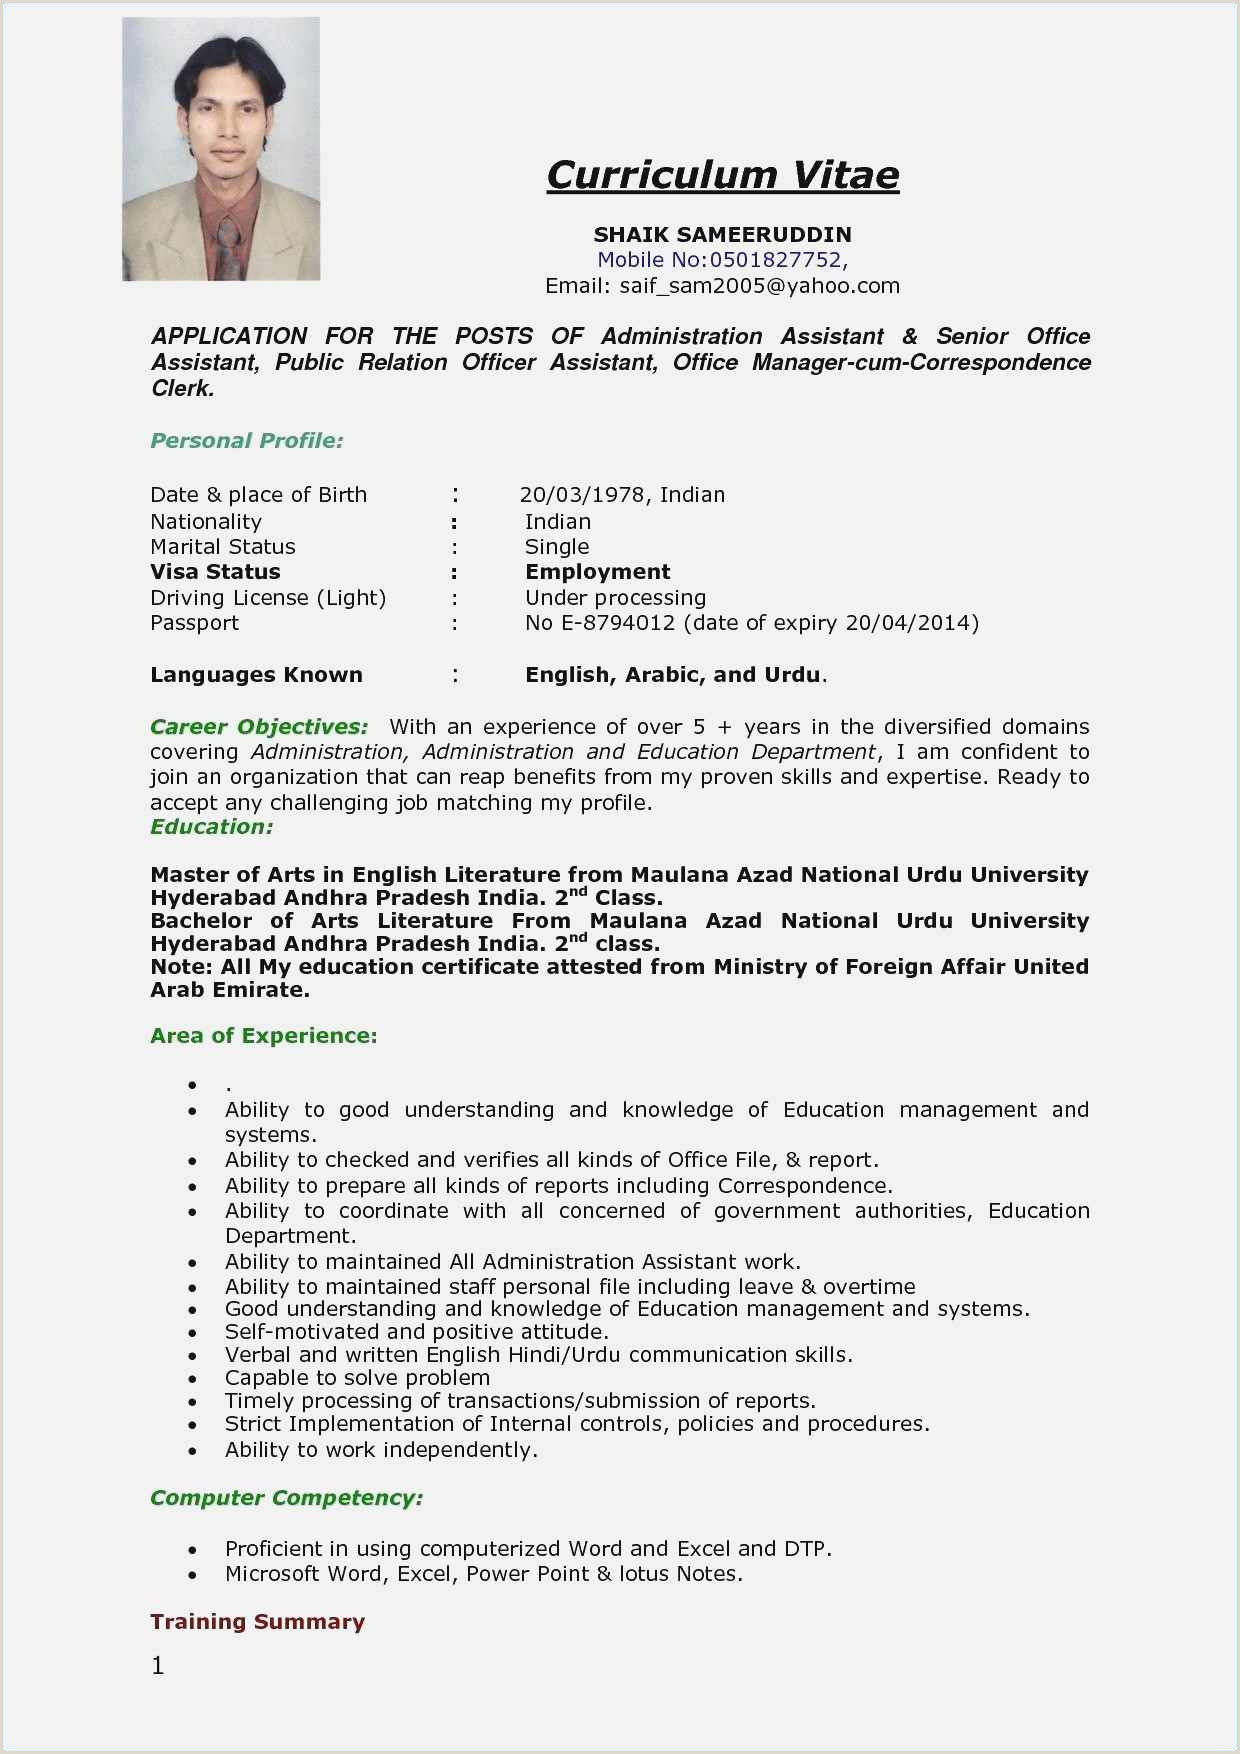 Best Professional Cv format Pdf Free Curriculum Vitae Examples Construction Beautiful